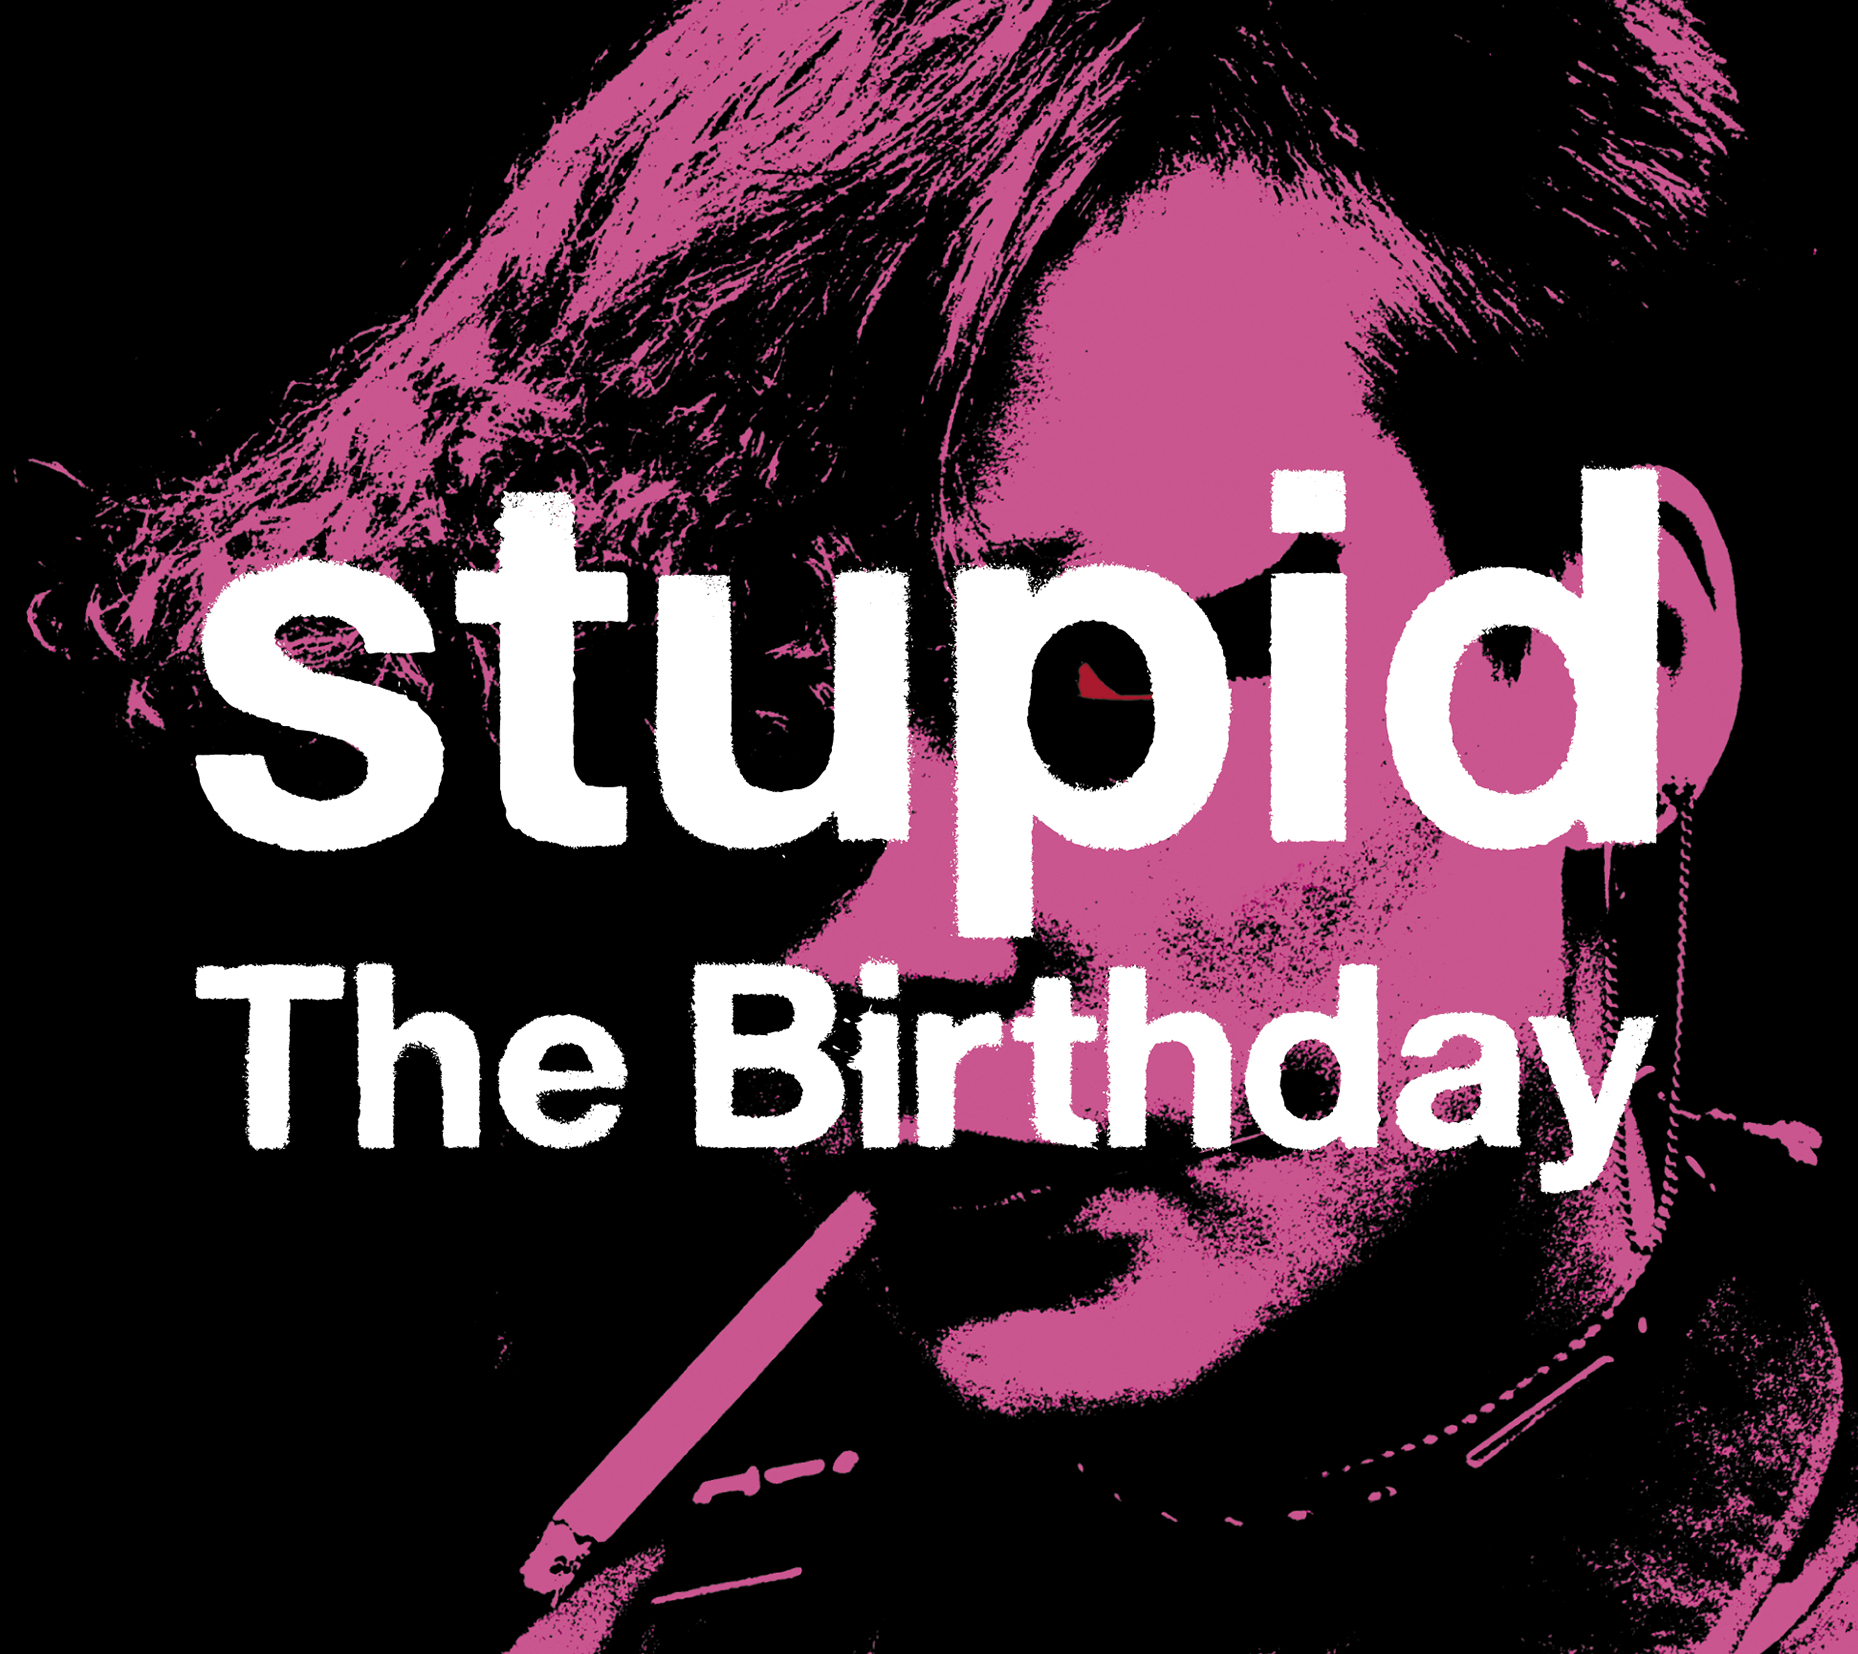 The Birthday 「stupid」